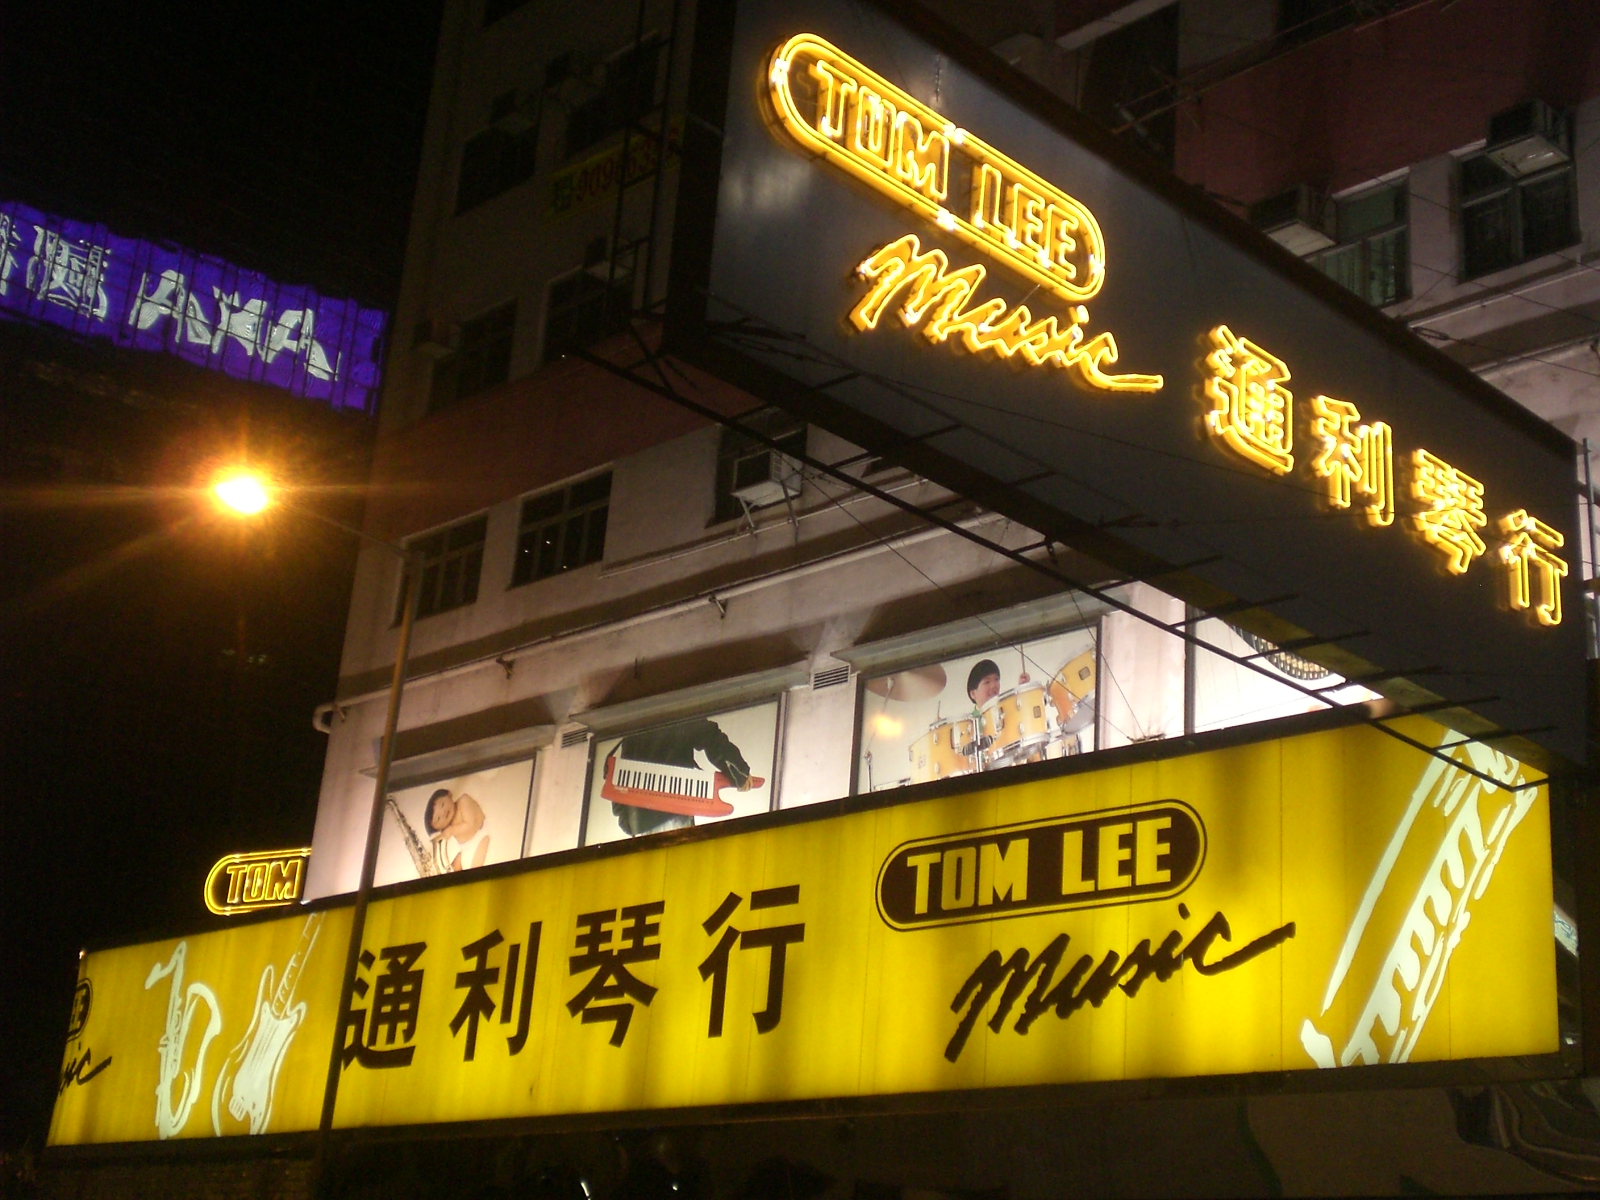 Tomlee  >> File Hk Wan Chai Stewart Road Tom Lee Music Night Lighting 通利琴行